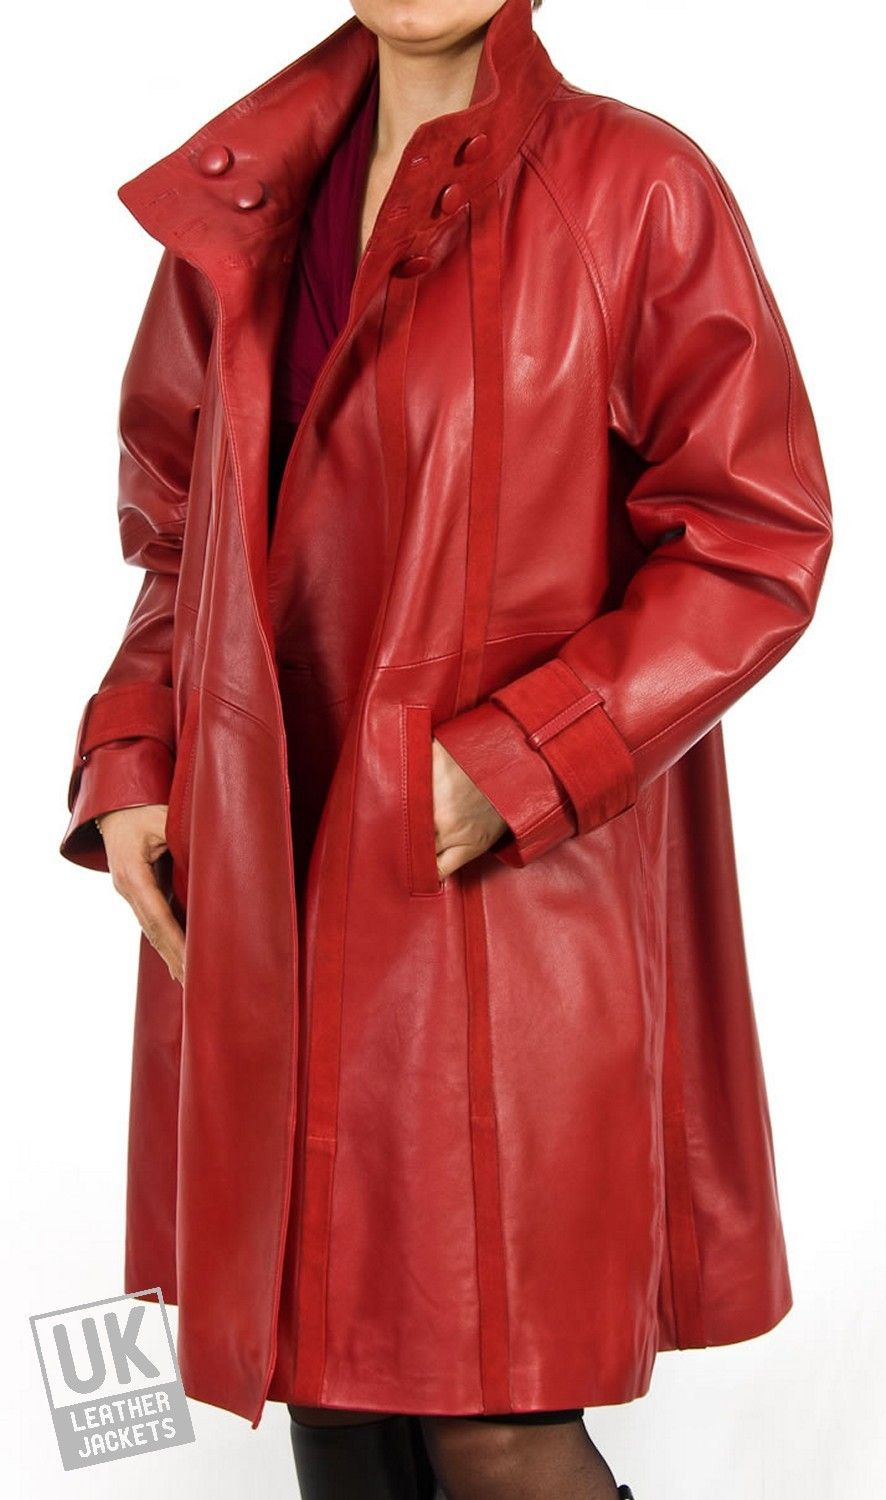 Women's Red Leather & Suede Swing Coat - Plus Size - Lara - Red ...